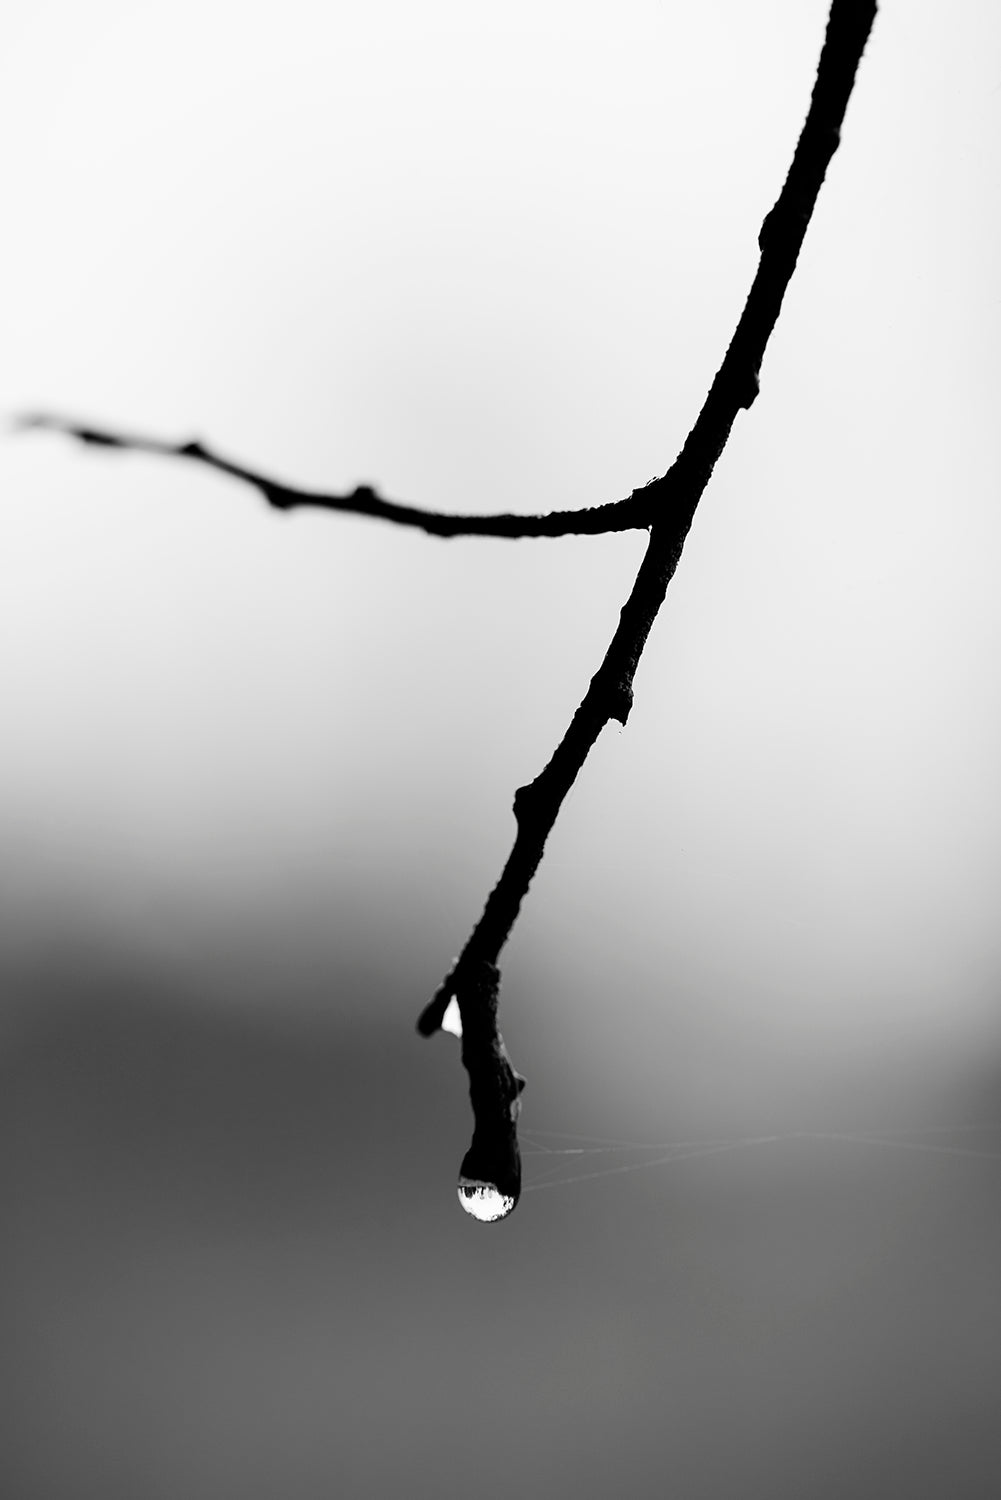 Tree Branch with Rain Drop - Black and White Landscape Photograph by Keith Dotson. Buy a print.